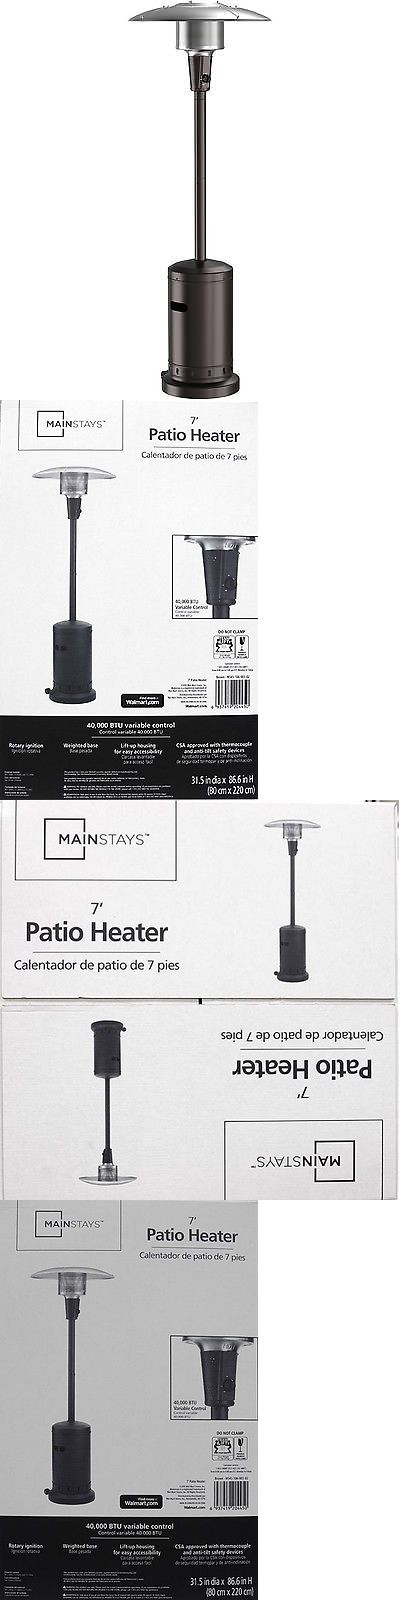 Good Patio Heaters 106402: Patio Portable Large Heater Wheels Outdoor Firepit  Propane Night New Mainstays